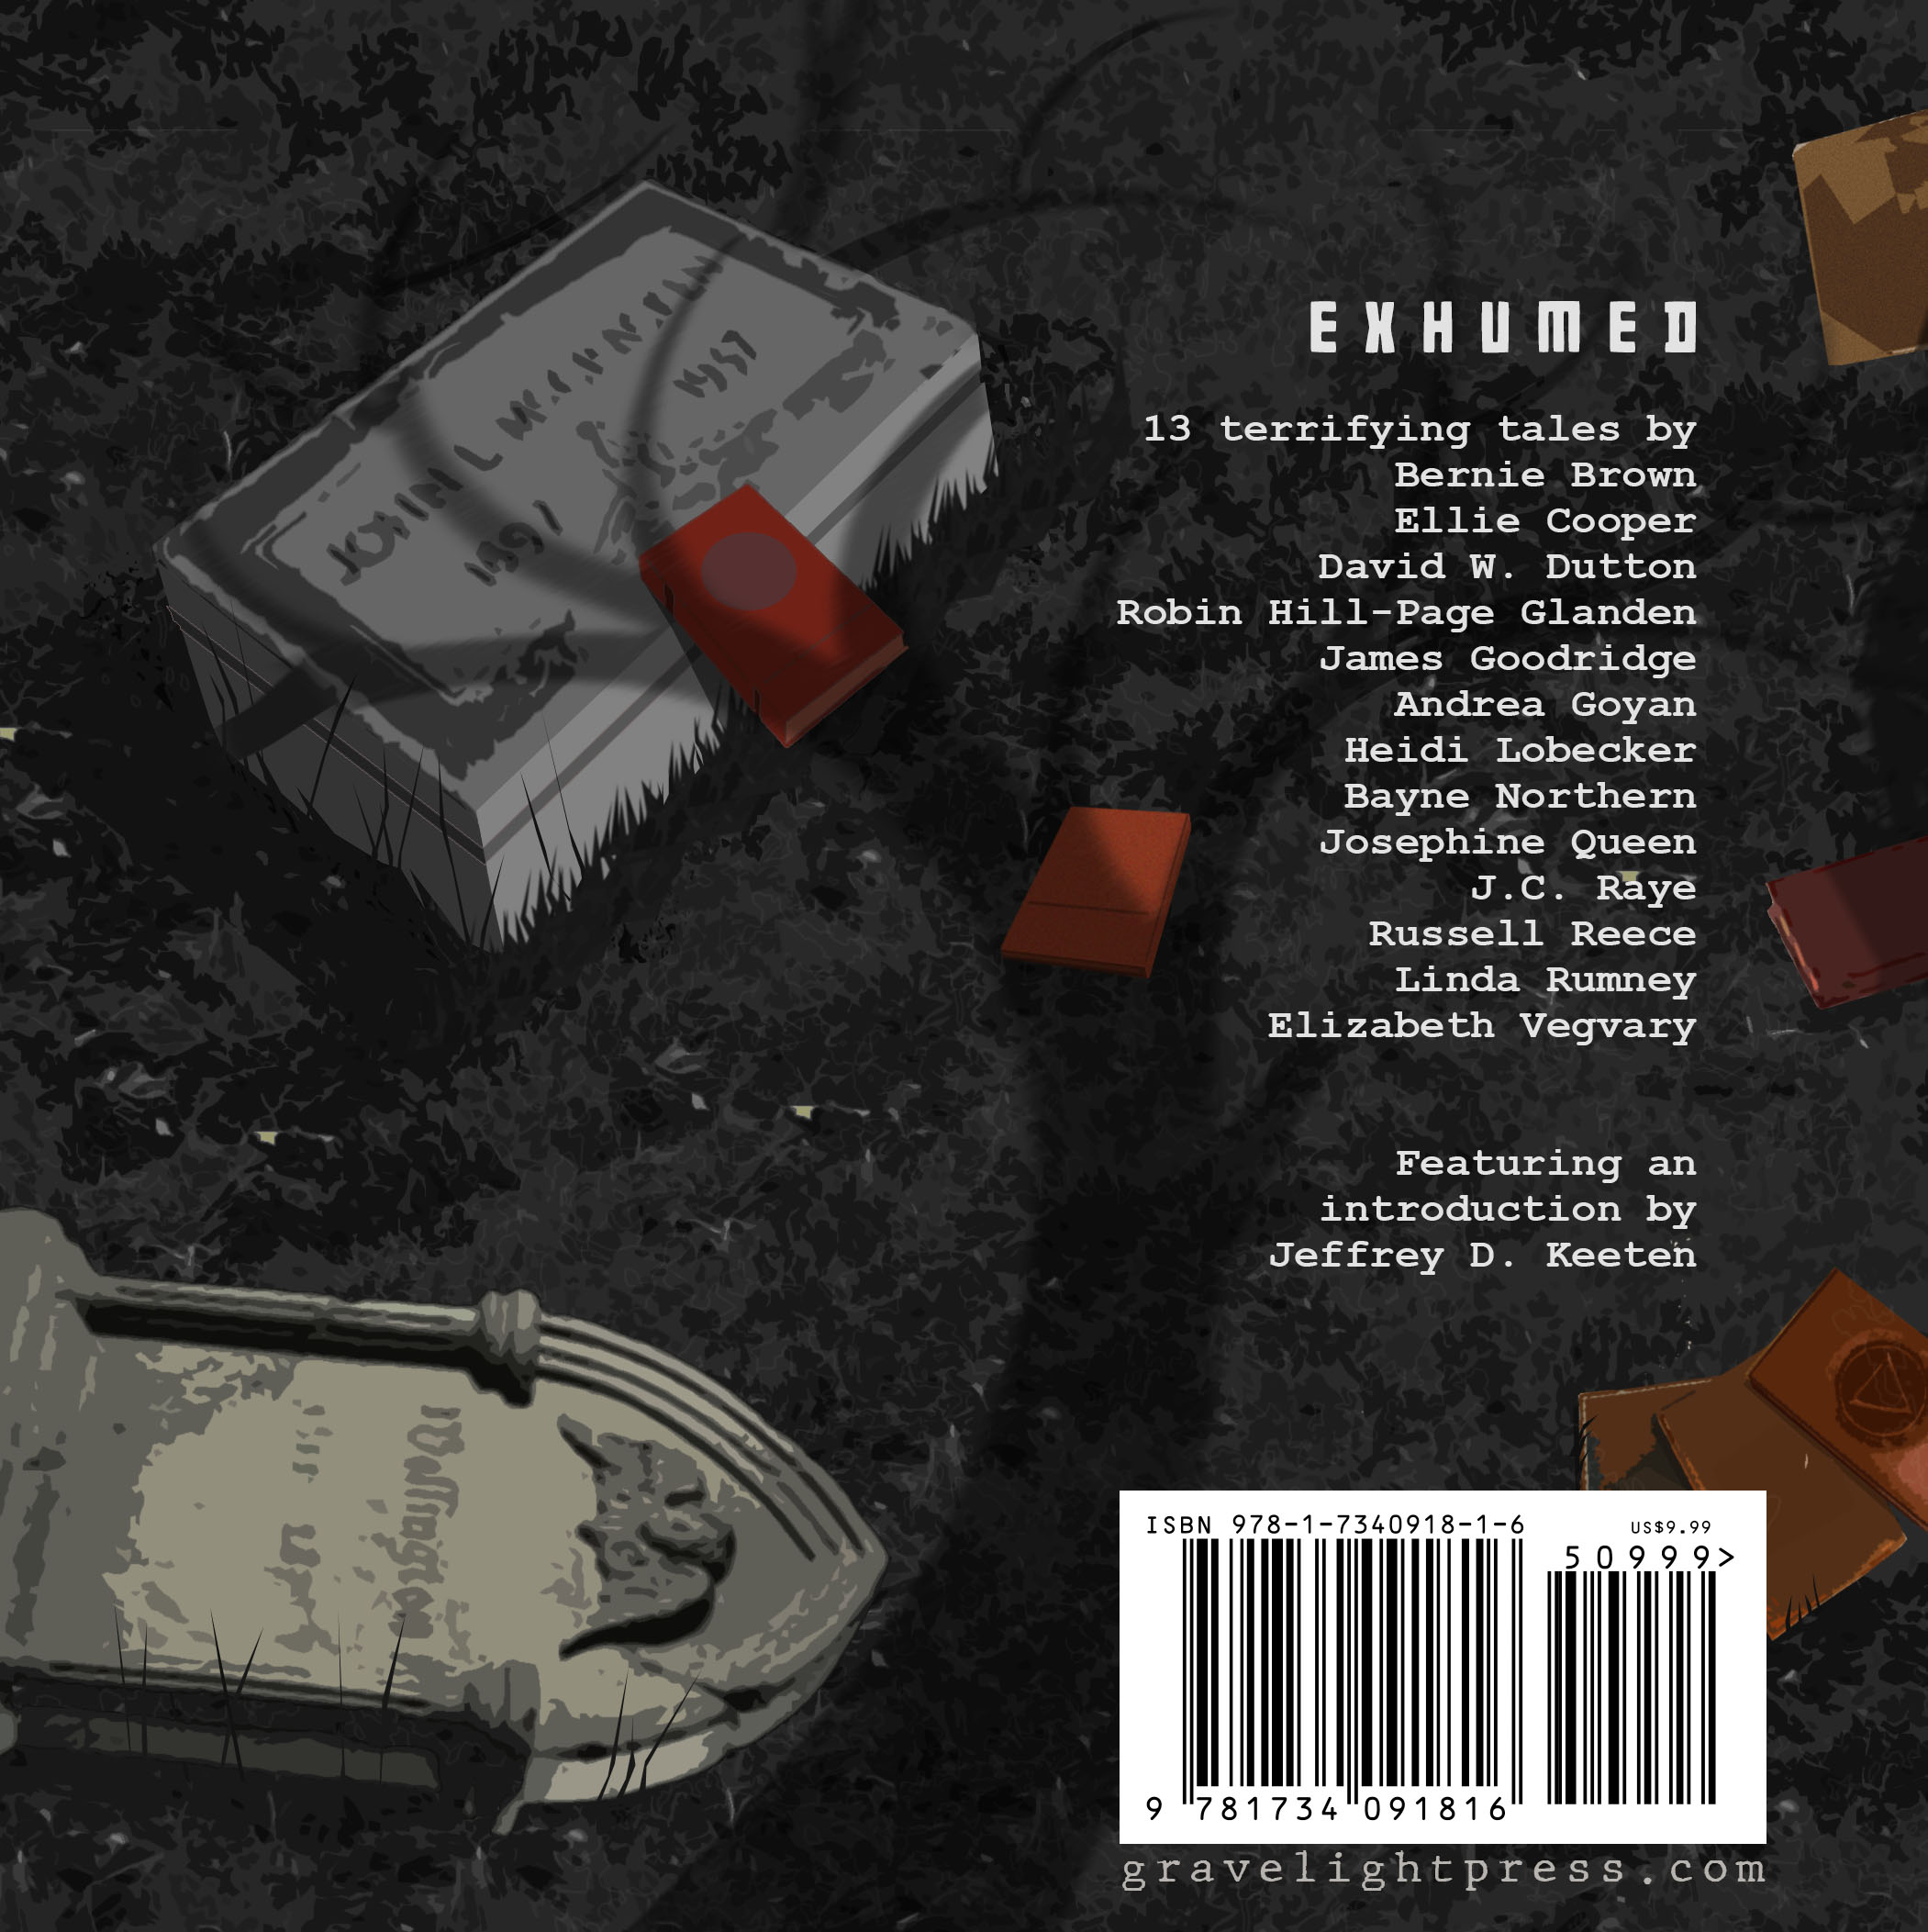 exhumed-back-cover-08.08.20